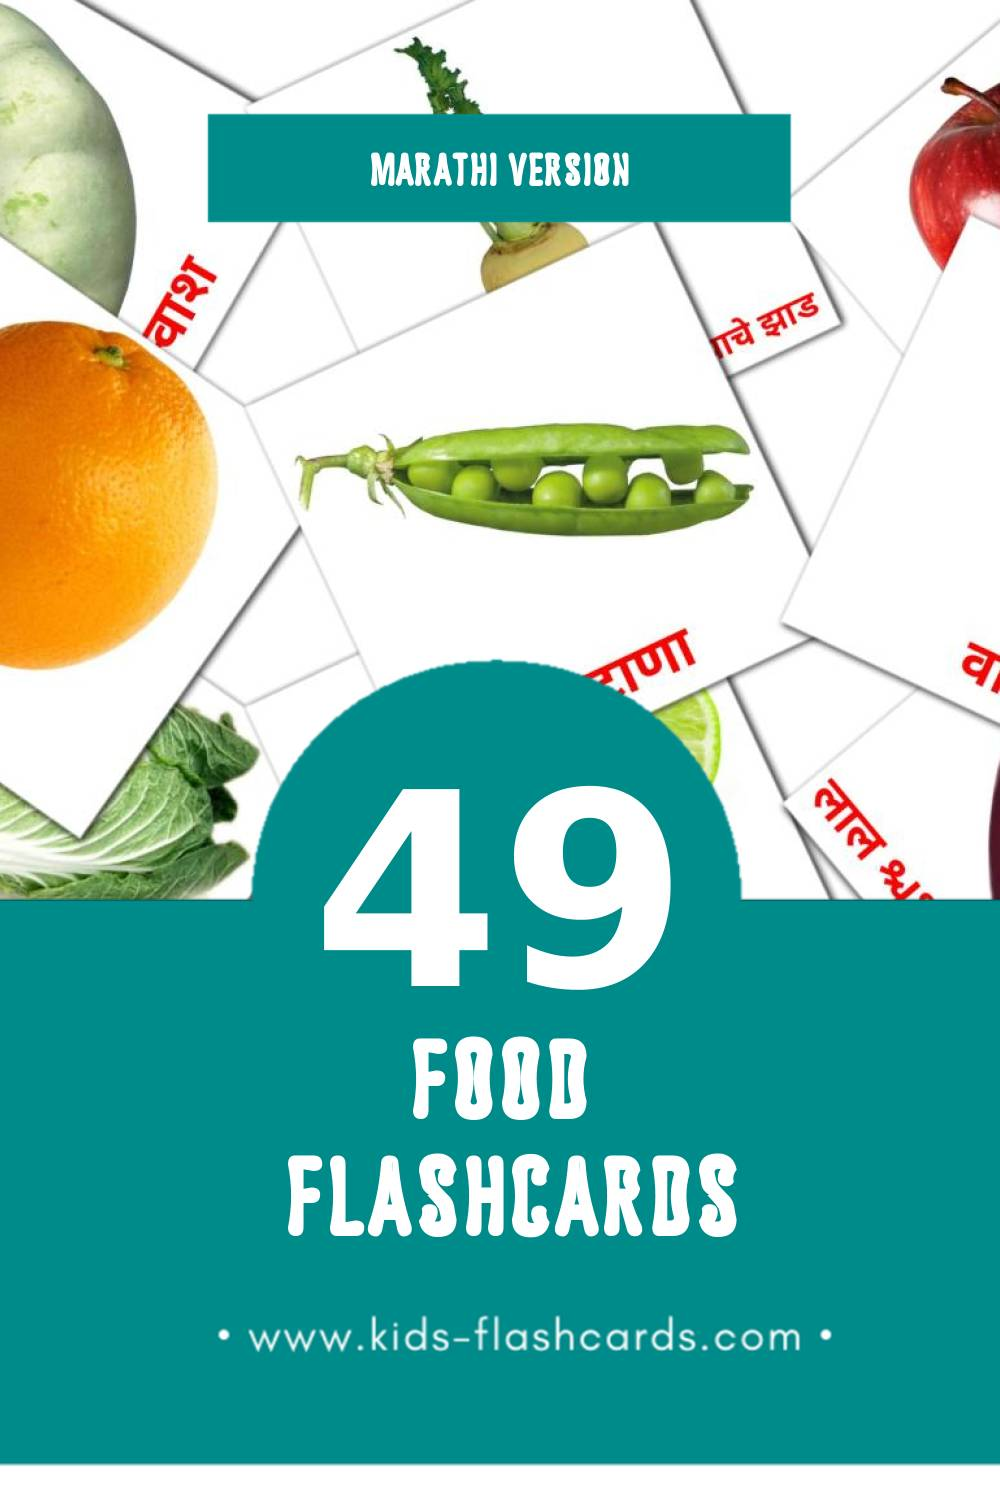 Visual Vegetable Flashcards for Toddlers (29 cards in Marathi)